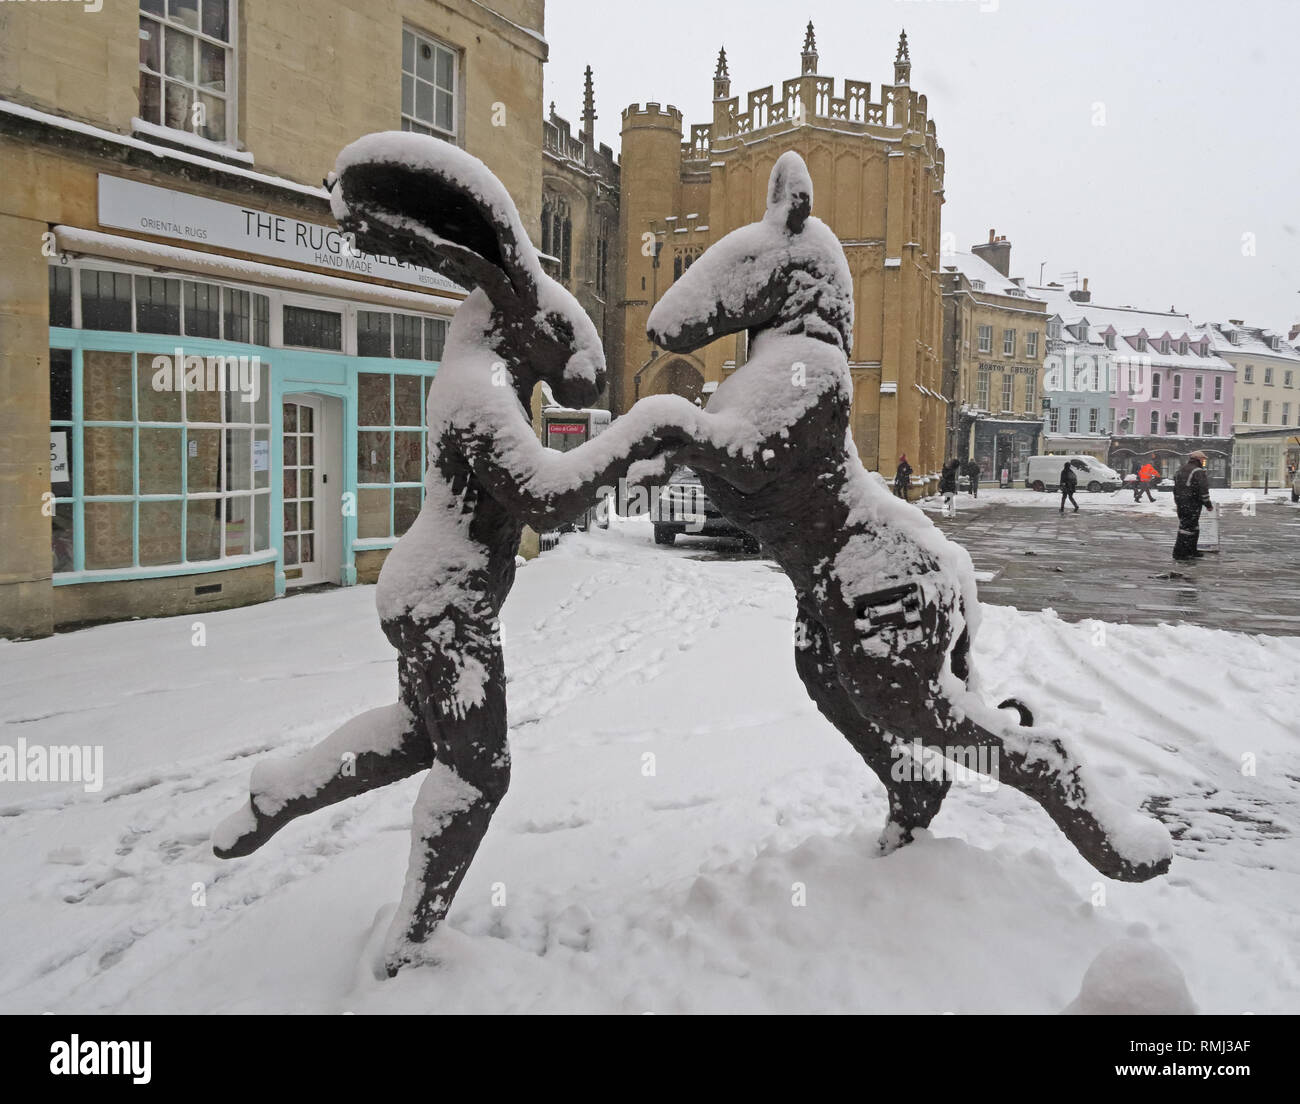 Sophie Ryder rabbit sculpture, in winter snow Cirencester town centre, Gloucestershire, South West England, UK - Stock Image